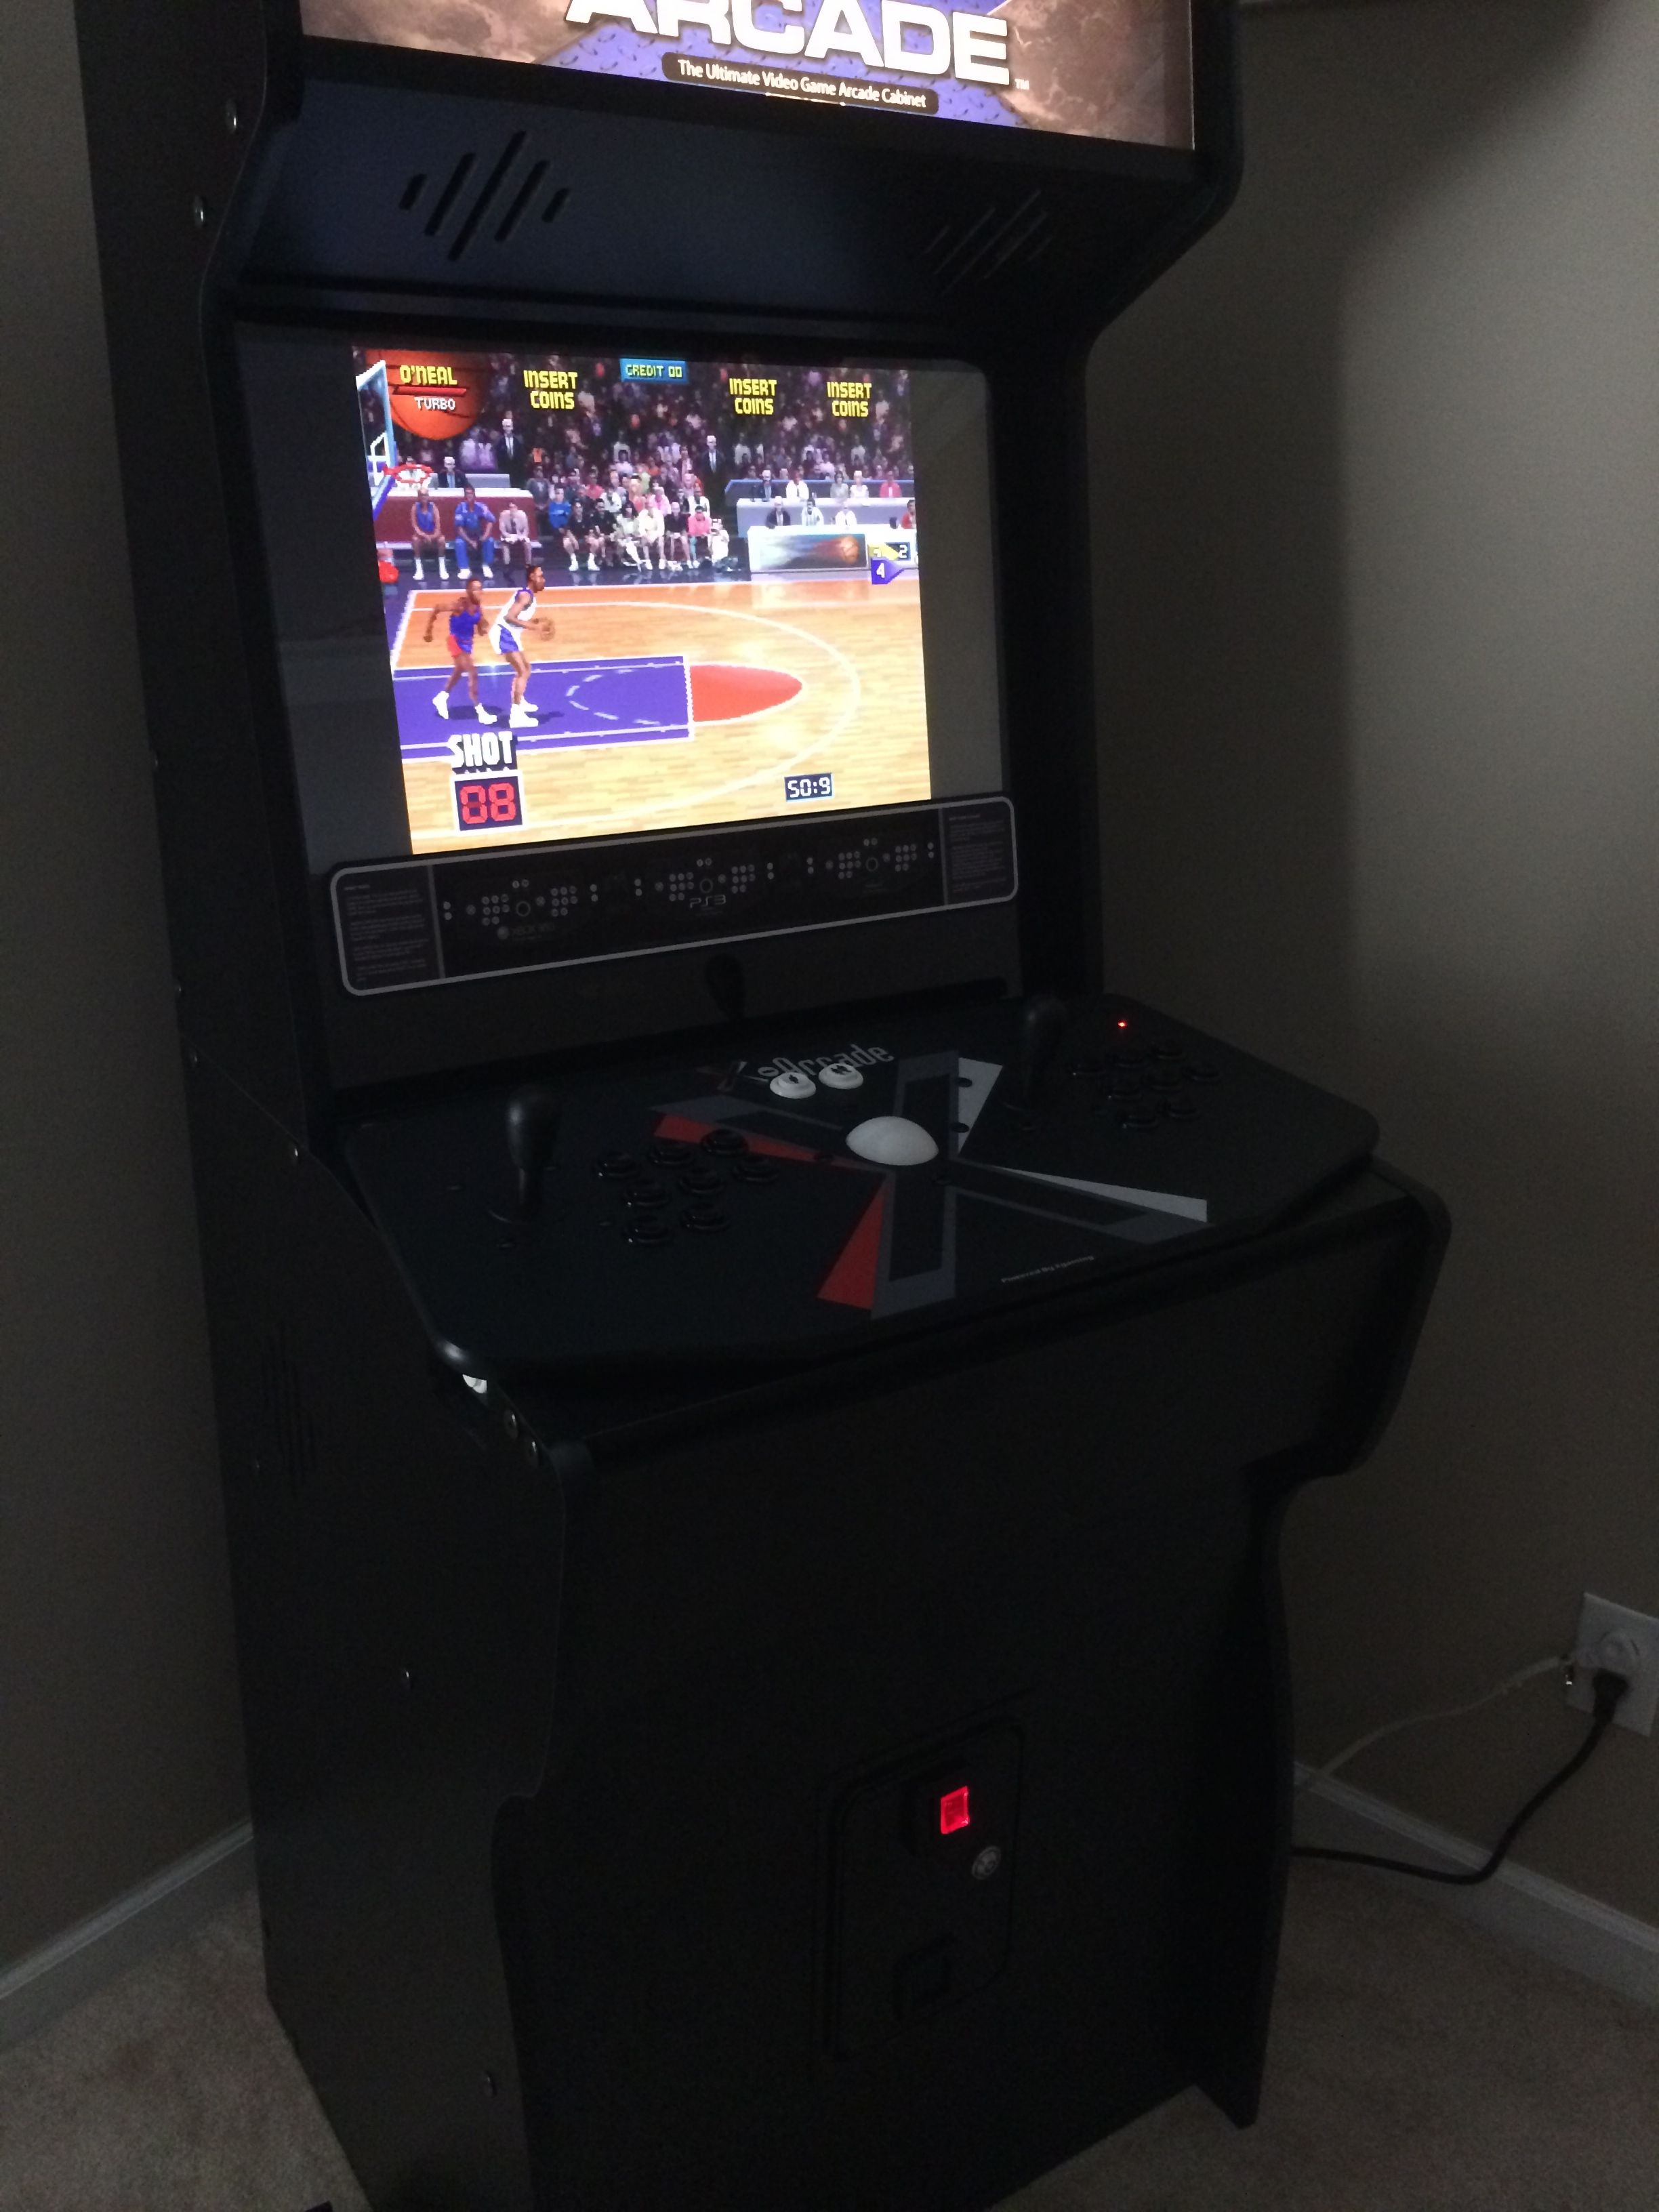 Some of that NBA Jam biz. | Arcade, Games